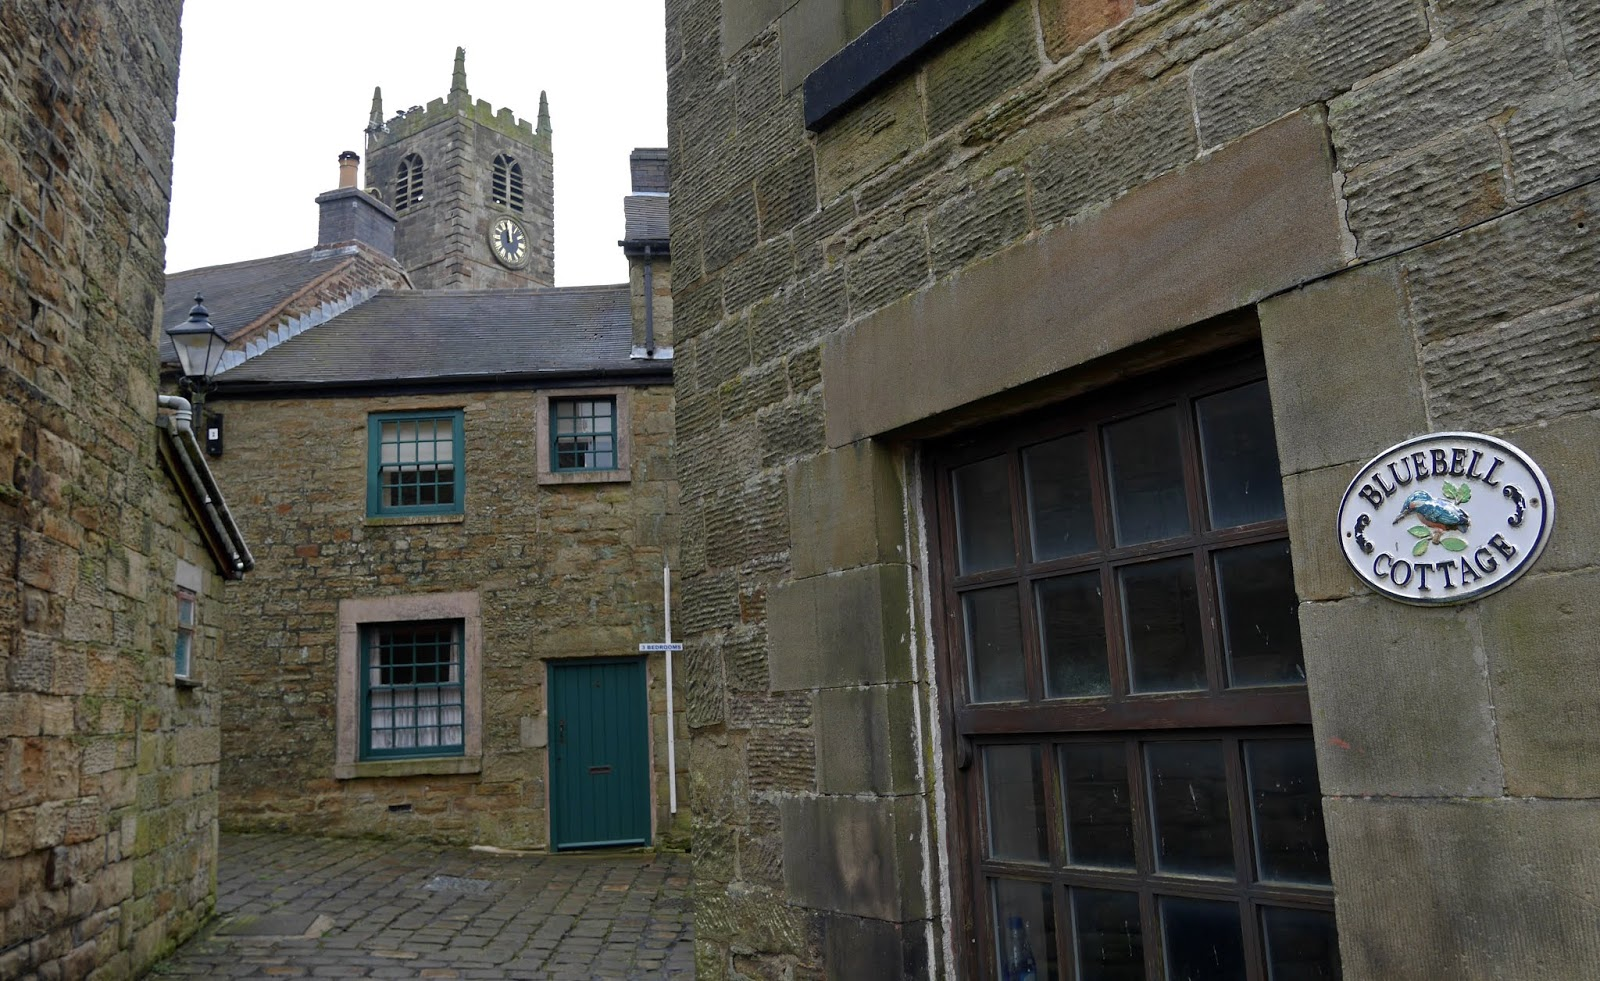 Architecture in Longnor, Peak District National Park